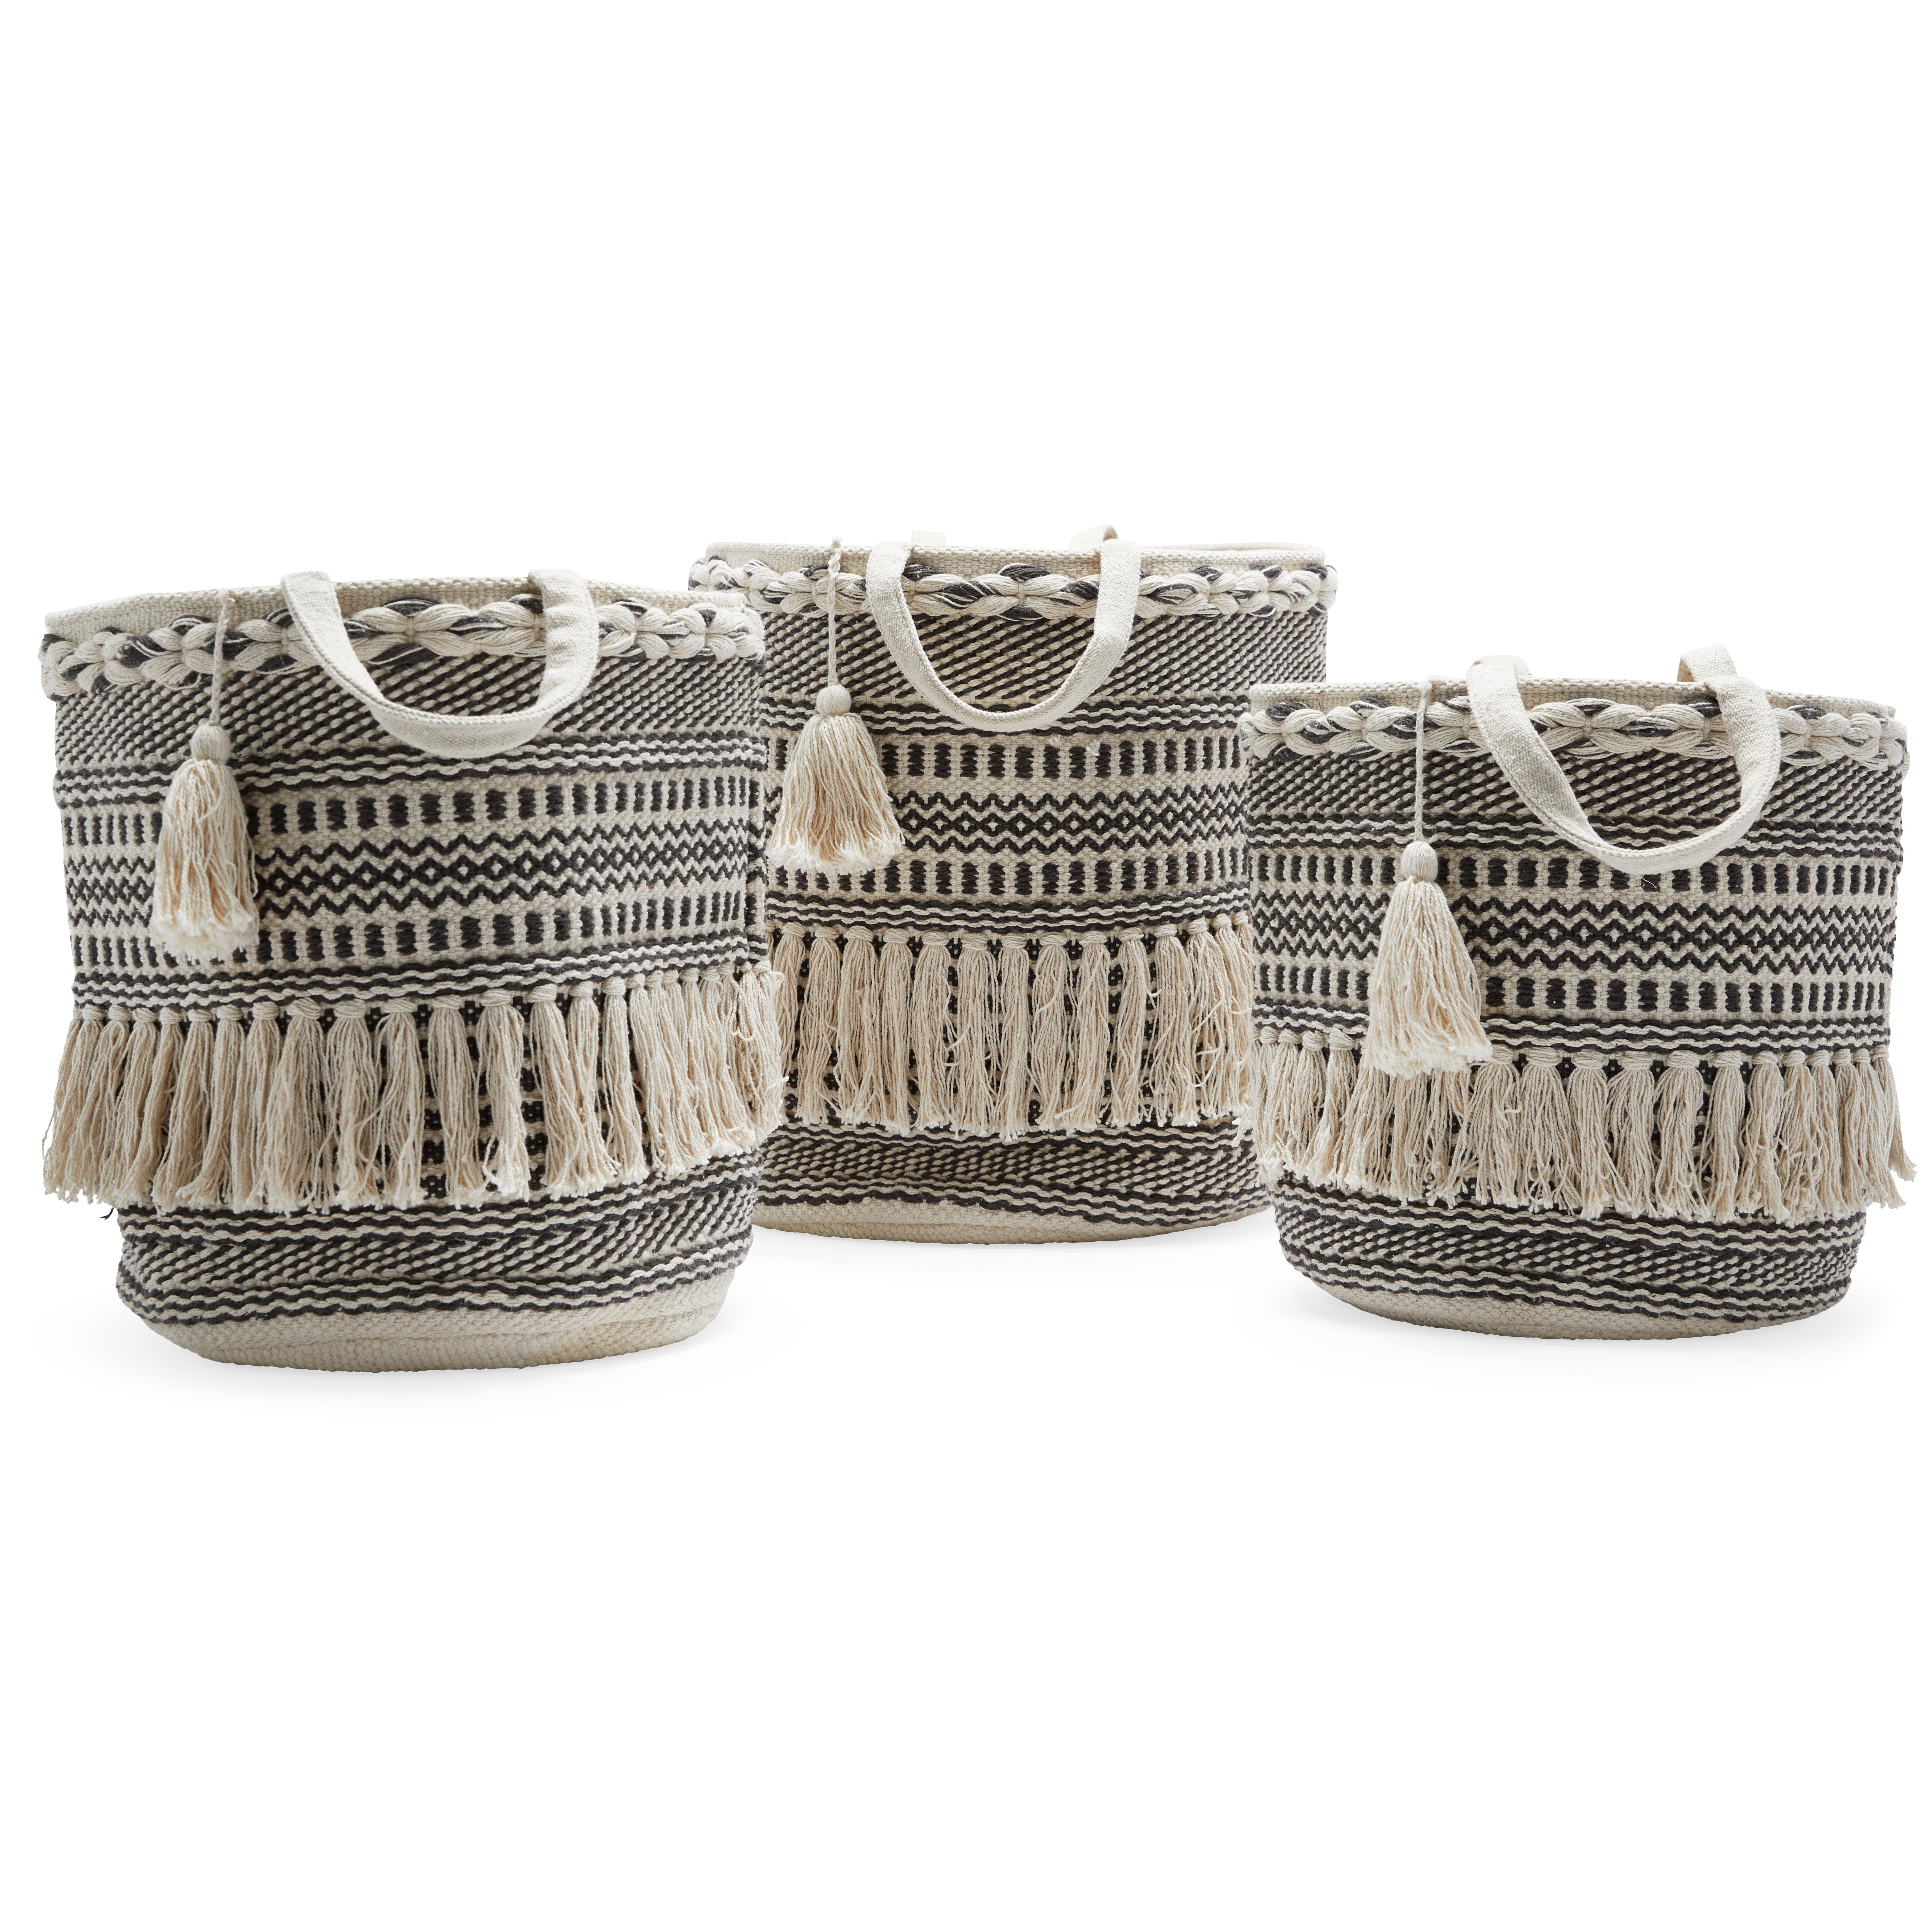 Hand Woven Macrame 3 Piece Basket Set, Natural And Black pertaining to 4 Piece Handwoven Wheel Wall Decor Sets (Image 20 of 30)